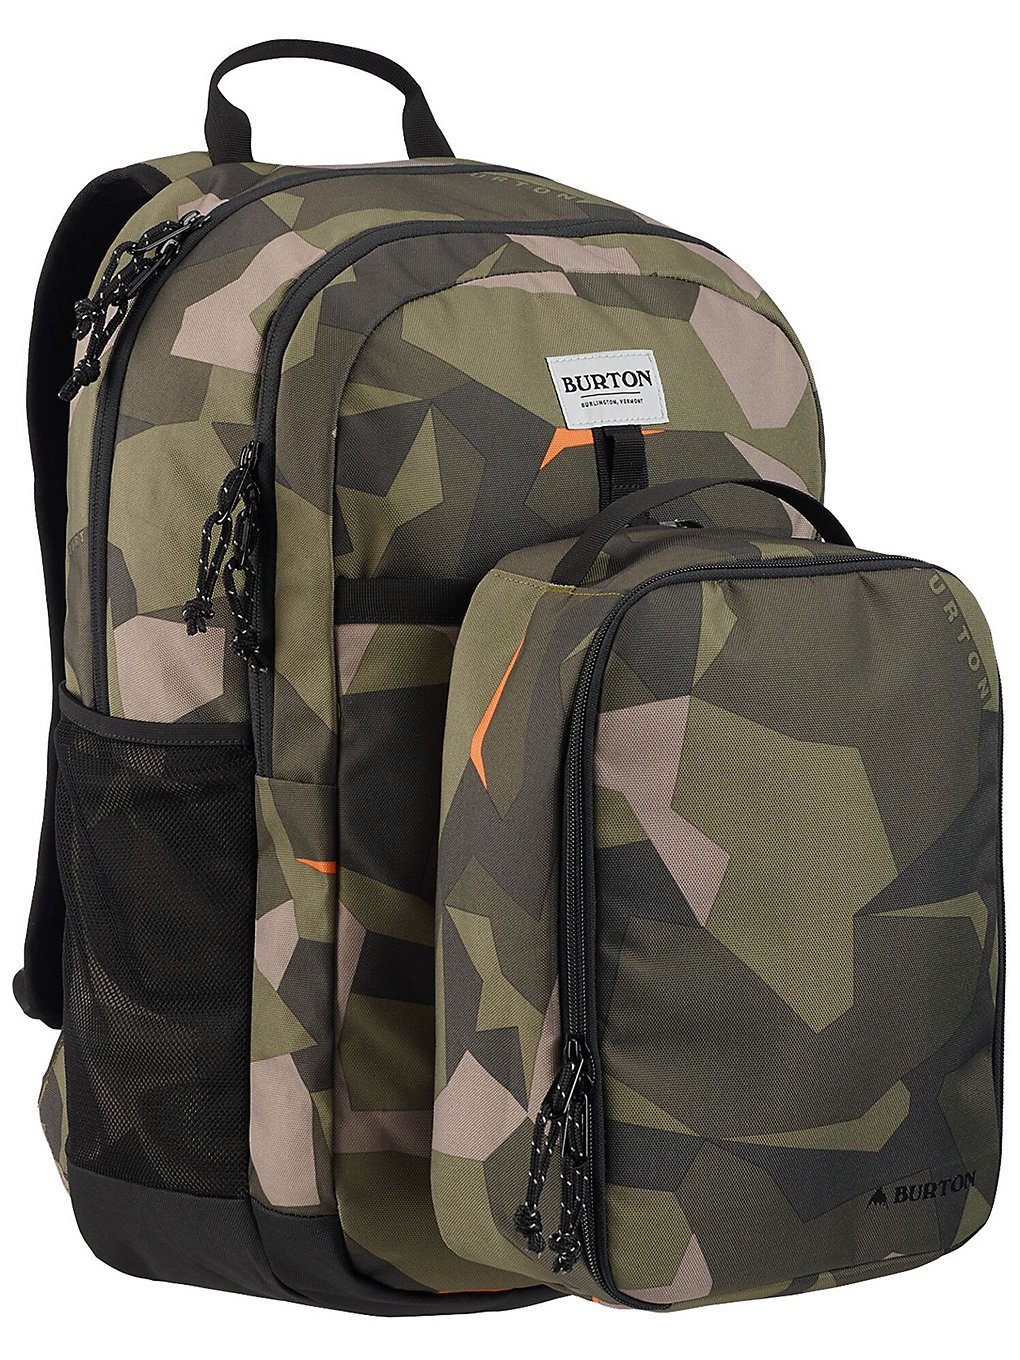 Image of Burton Lunch-n-Pack Backpack three crowns camo Uni